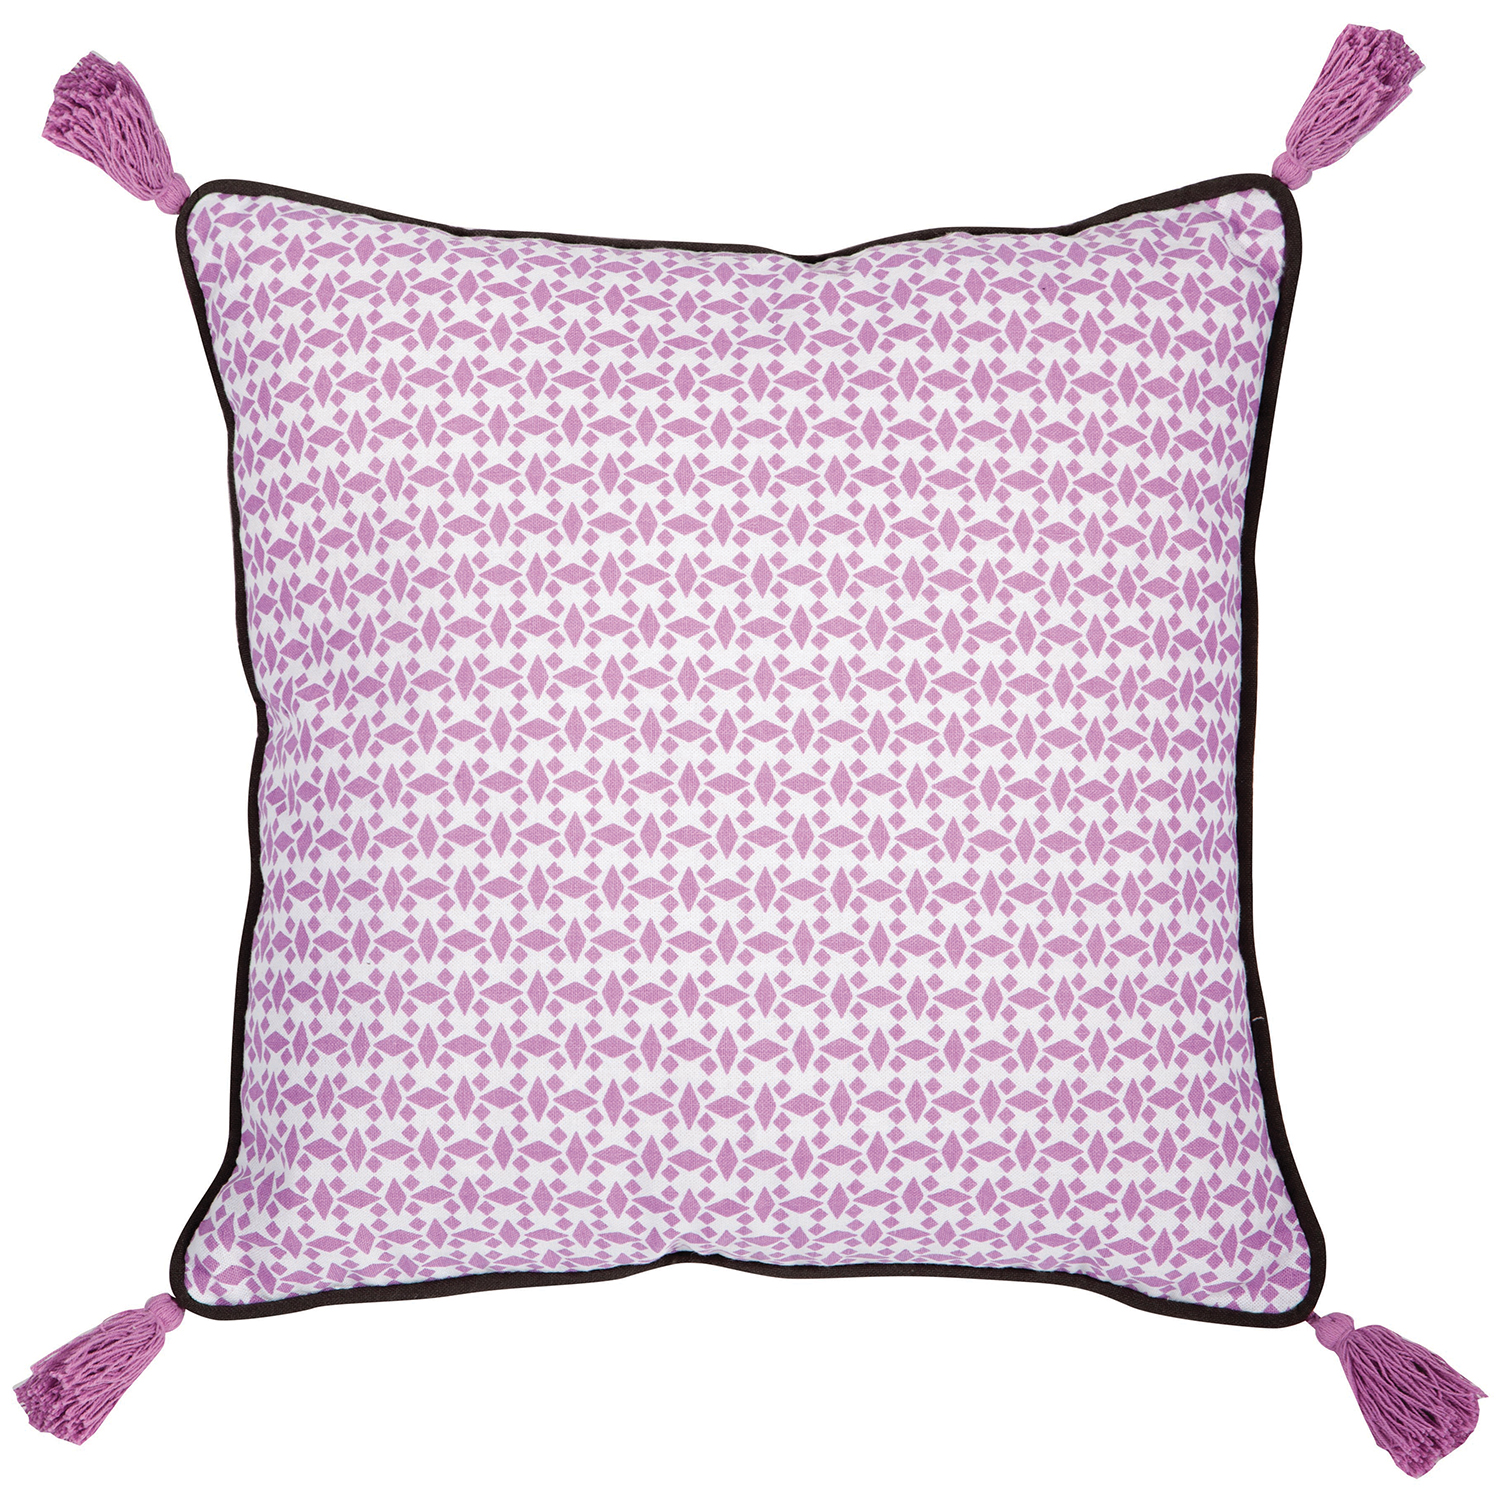 Coussin  en coton anemone 40 x 40 (photo)